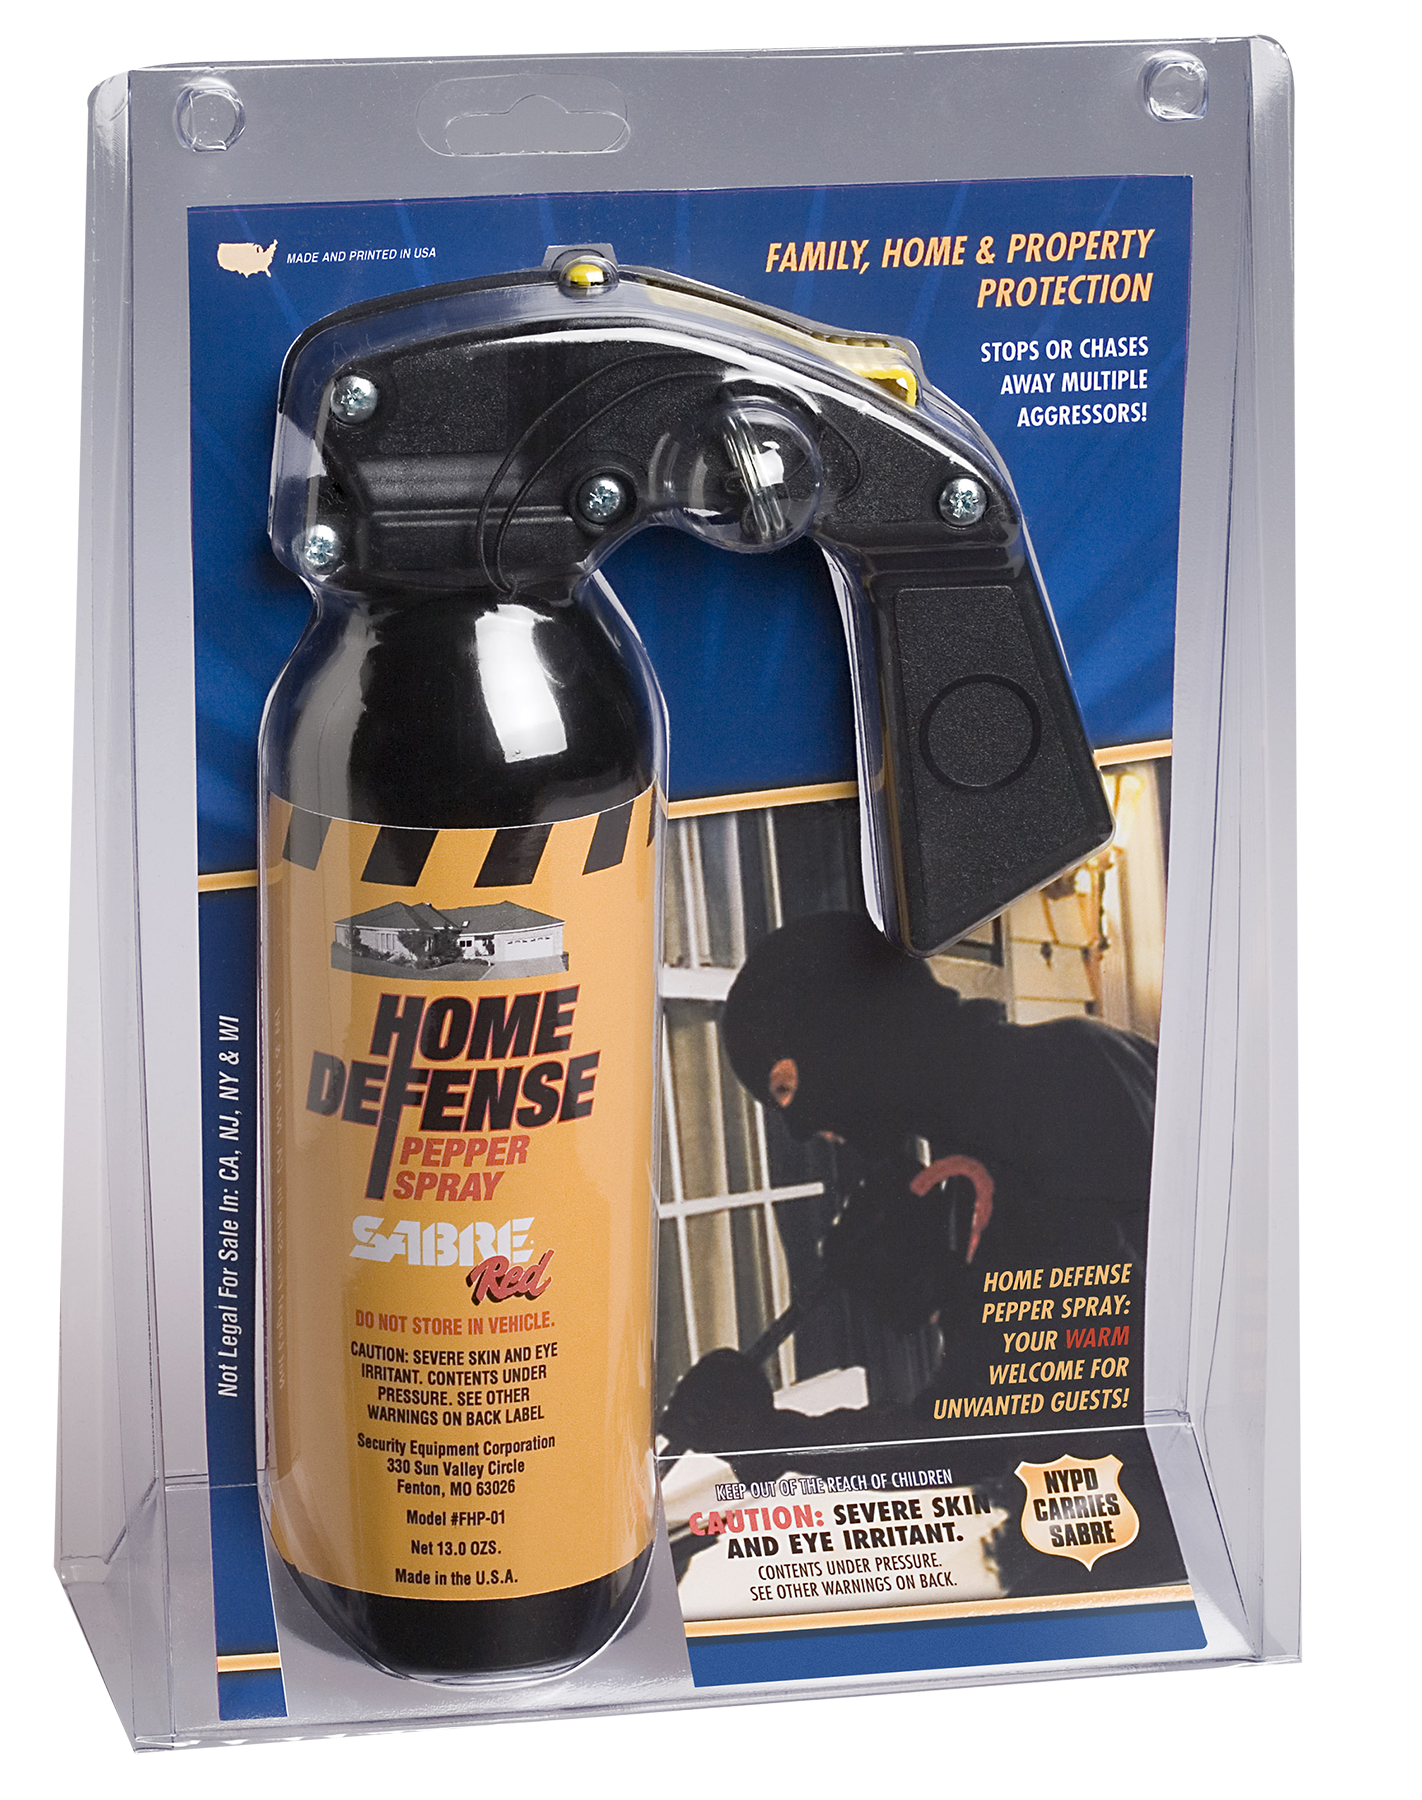 Sabre FHP01 Home Defense Pepper Spray 13 oz 13 oz 25 Feet